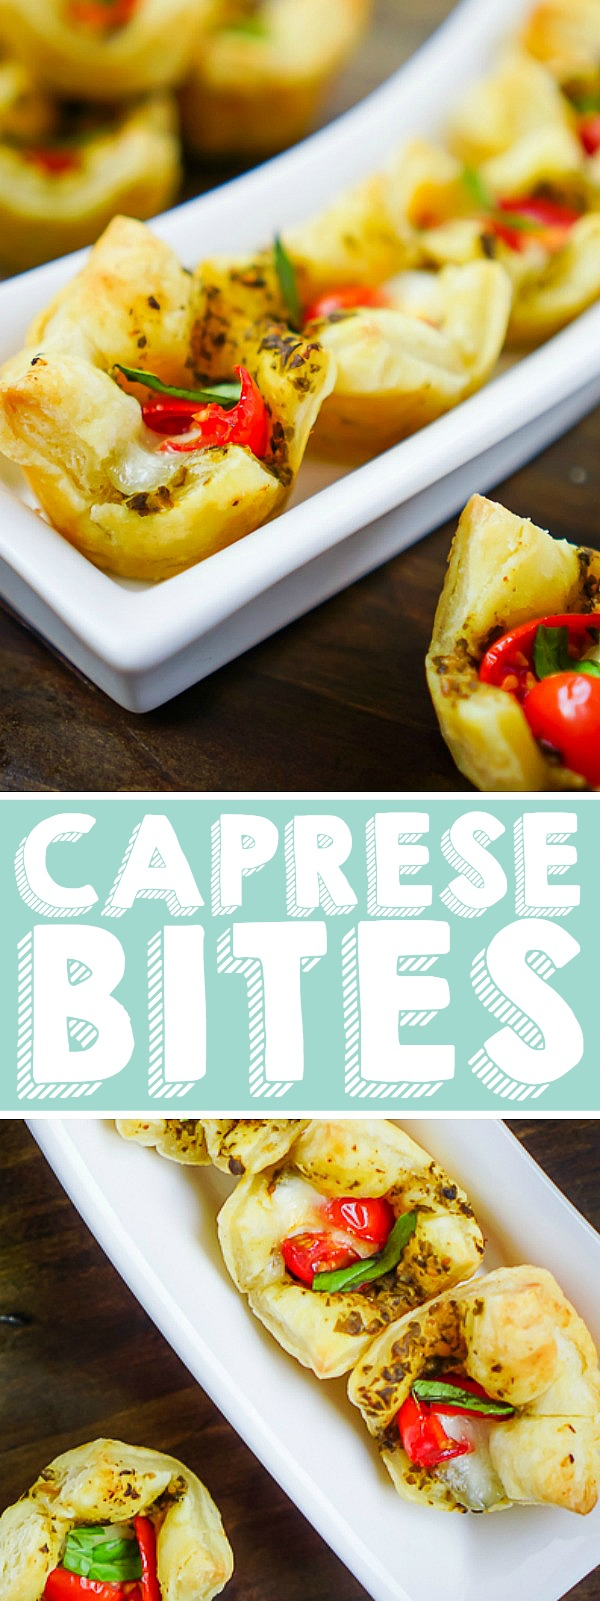 These Mini Puff Pastry Caprese Bites have been one of my favorite bite sized appetizers for years! It's a must make puff pastry appetizer that only takes 4 ingredients with an optional basil garnish. An easy, fresh, and festive holiday appetizer! | THE LOVE NERDS  #capreserecipe #thanksgivingappetizer #christmasappetizer #newyearsappetizer